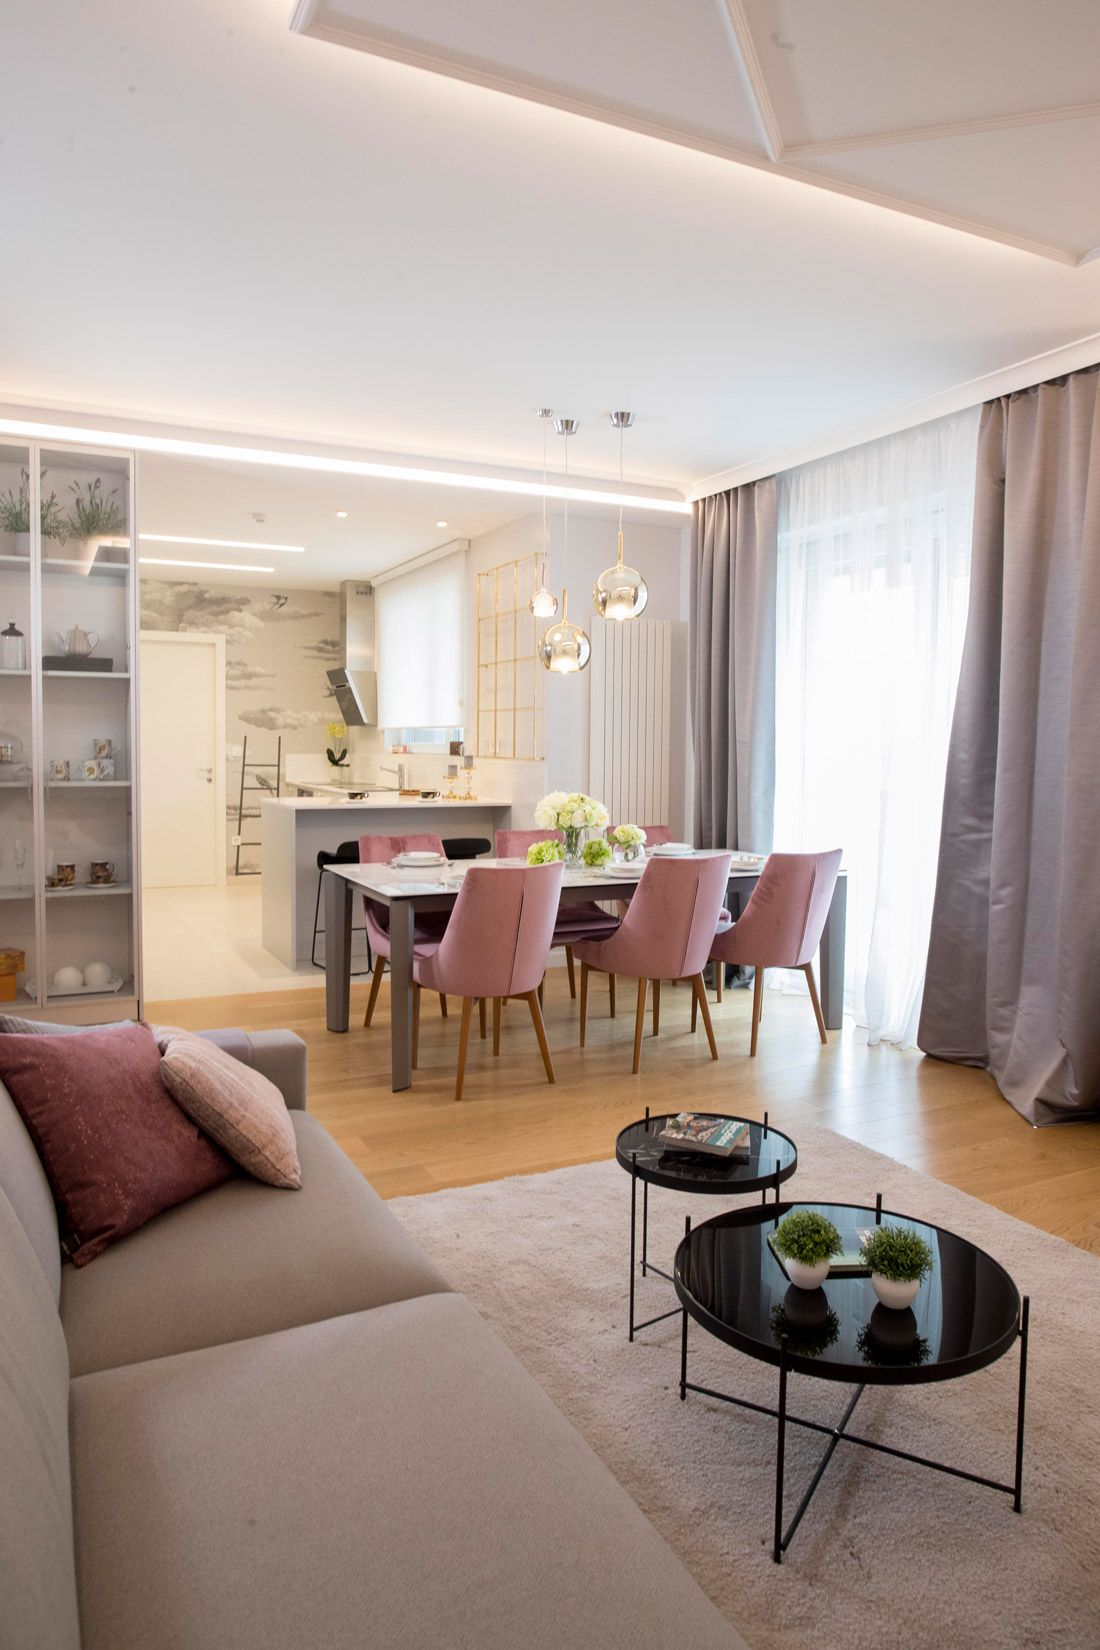 open space, wooden floor, brown rug, brown sofa, grey table, pink chairs, black tray coffee table